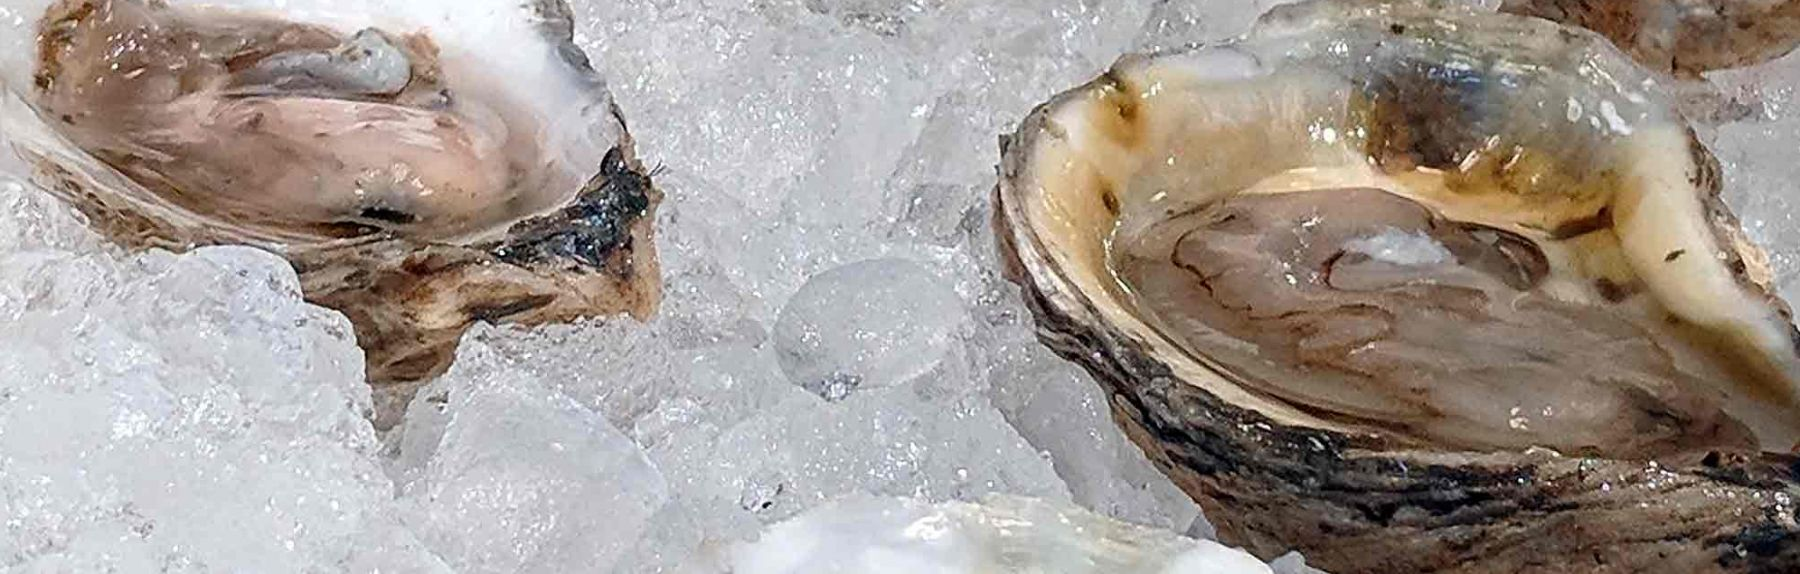 Portland Maine Oysters